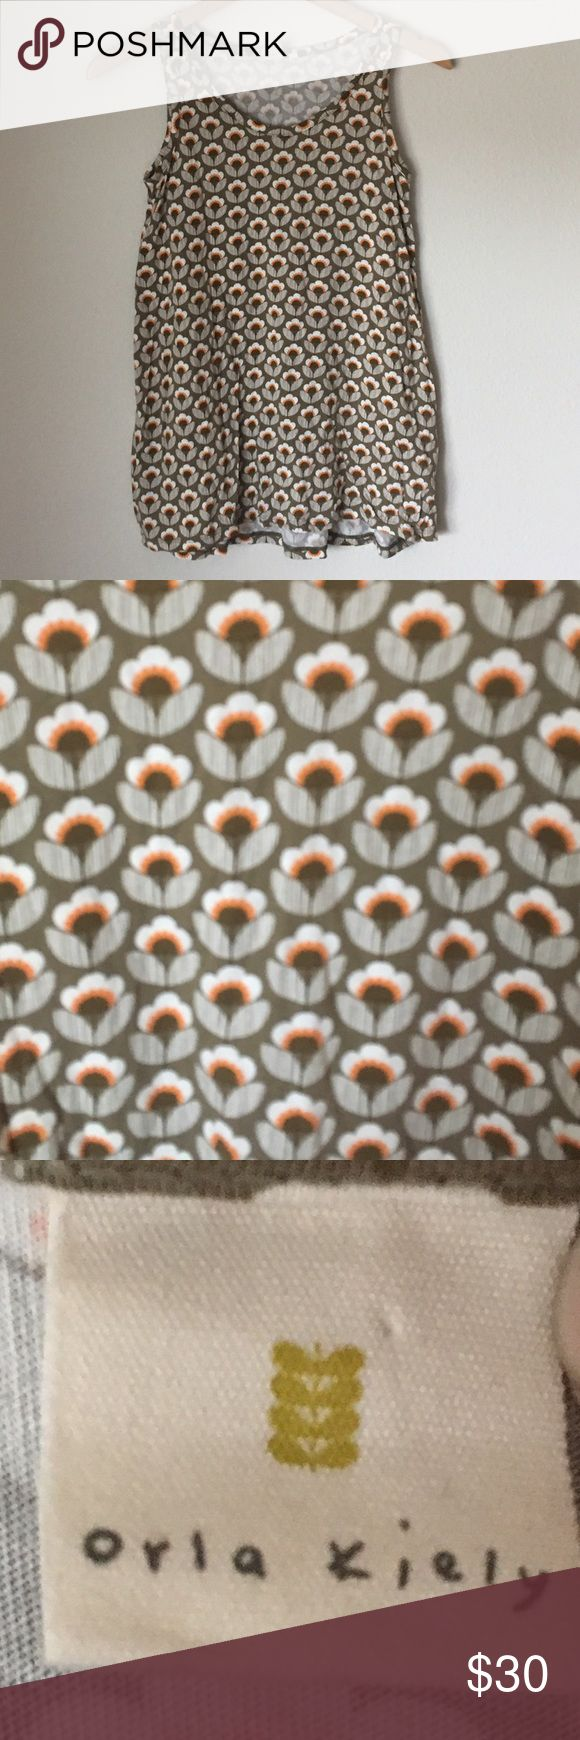 Orla Kiely Uniqlo Brown Floral Tank Top Size Small Orla Kiely Uniqlo brown floral tank top, size small.  Cotton/modal Blend.  Brown with white and orange flowers. Orla Kiely x Uniqlo Tops Tank Tops